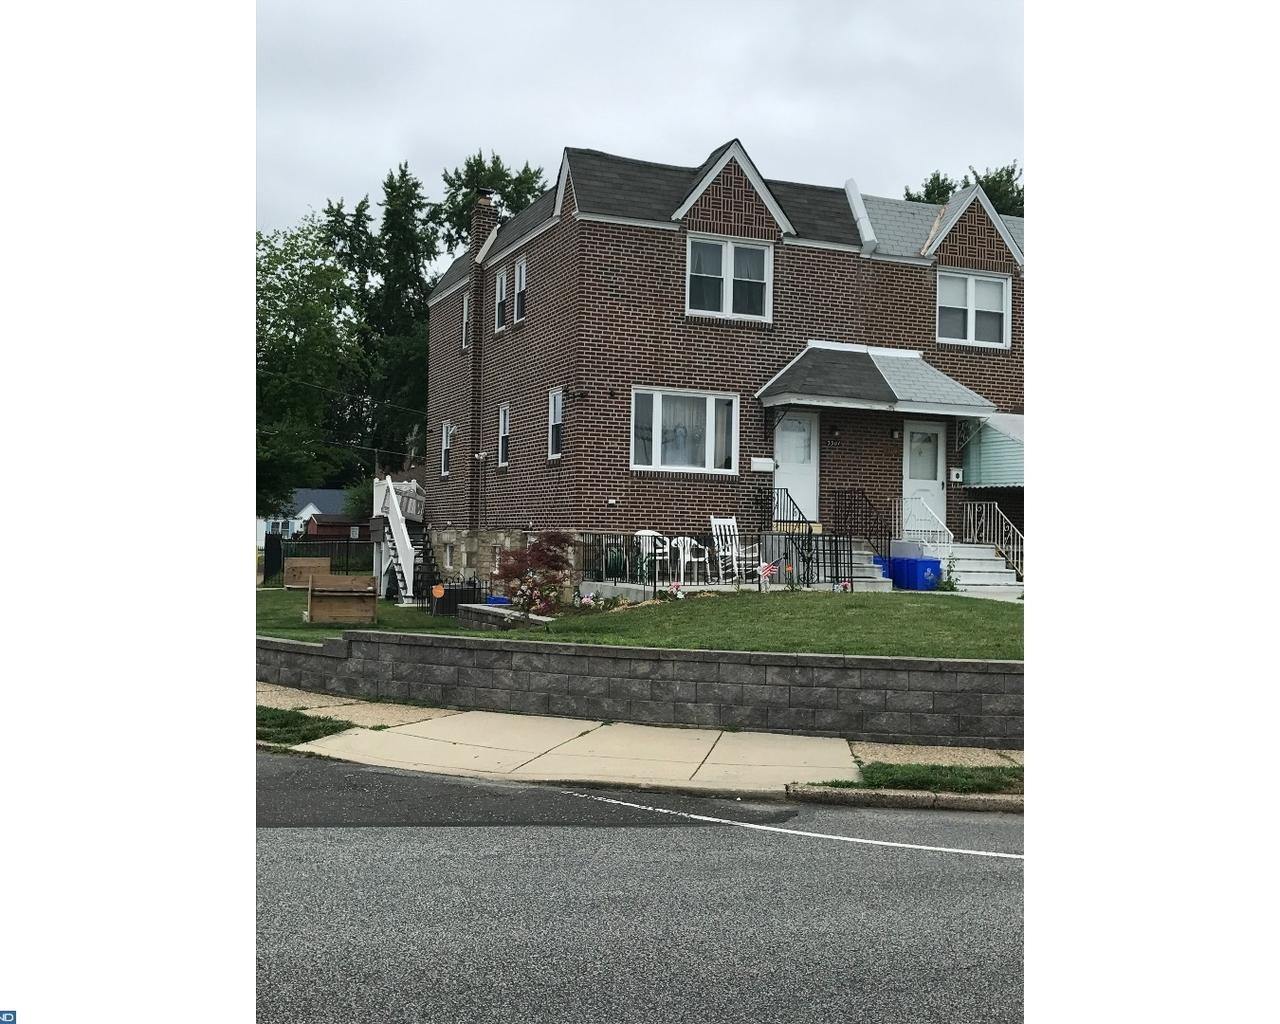 Cnd 181 3301 Holme Ave Philadelphia Pa Mls 7023210 Coldwell